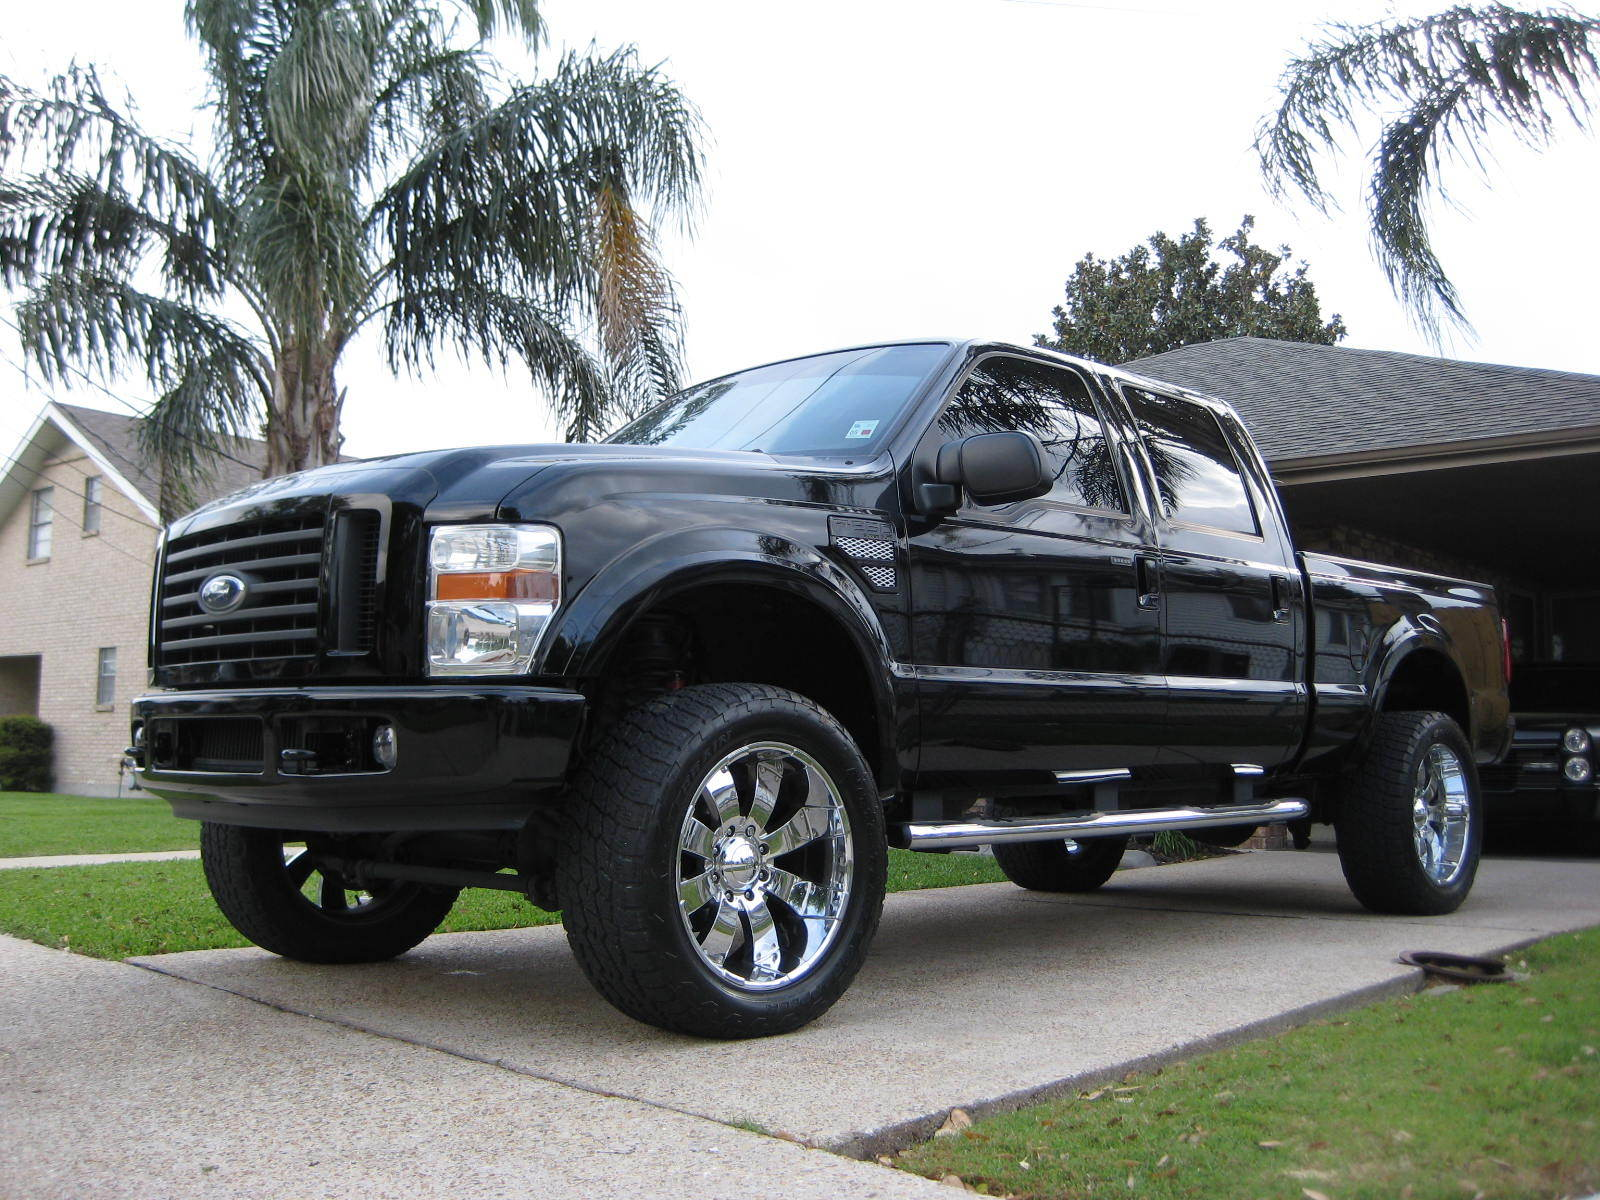 66lac 2008 ford f250 super duty crew cab specs photos modification info at cardomain. Black Bedroom Furniture Sets. Home Design Ideas